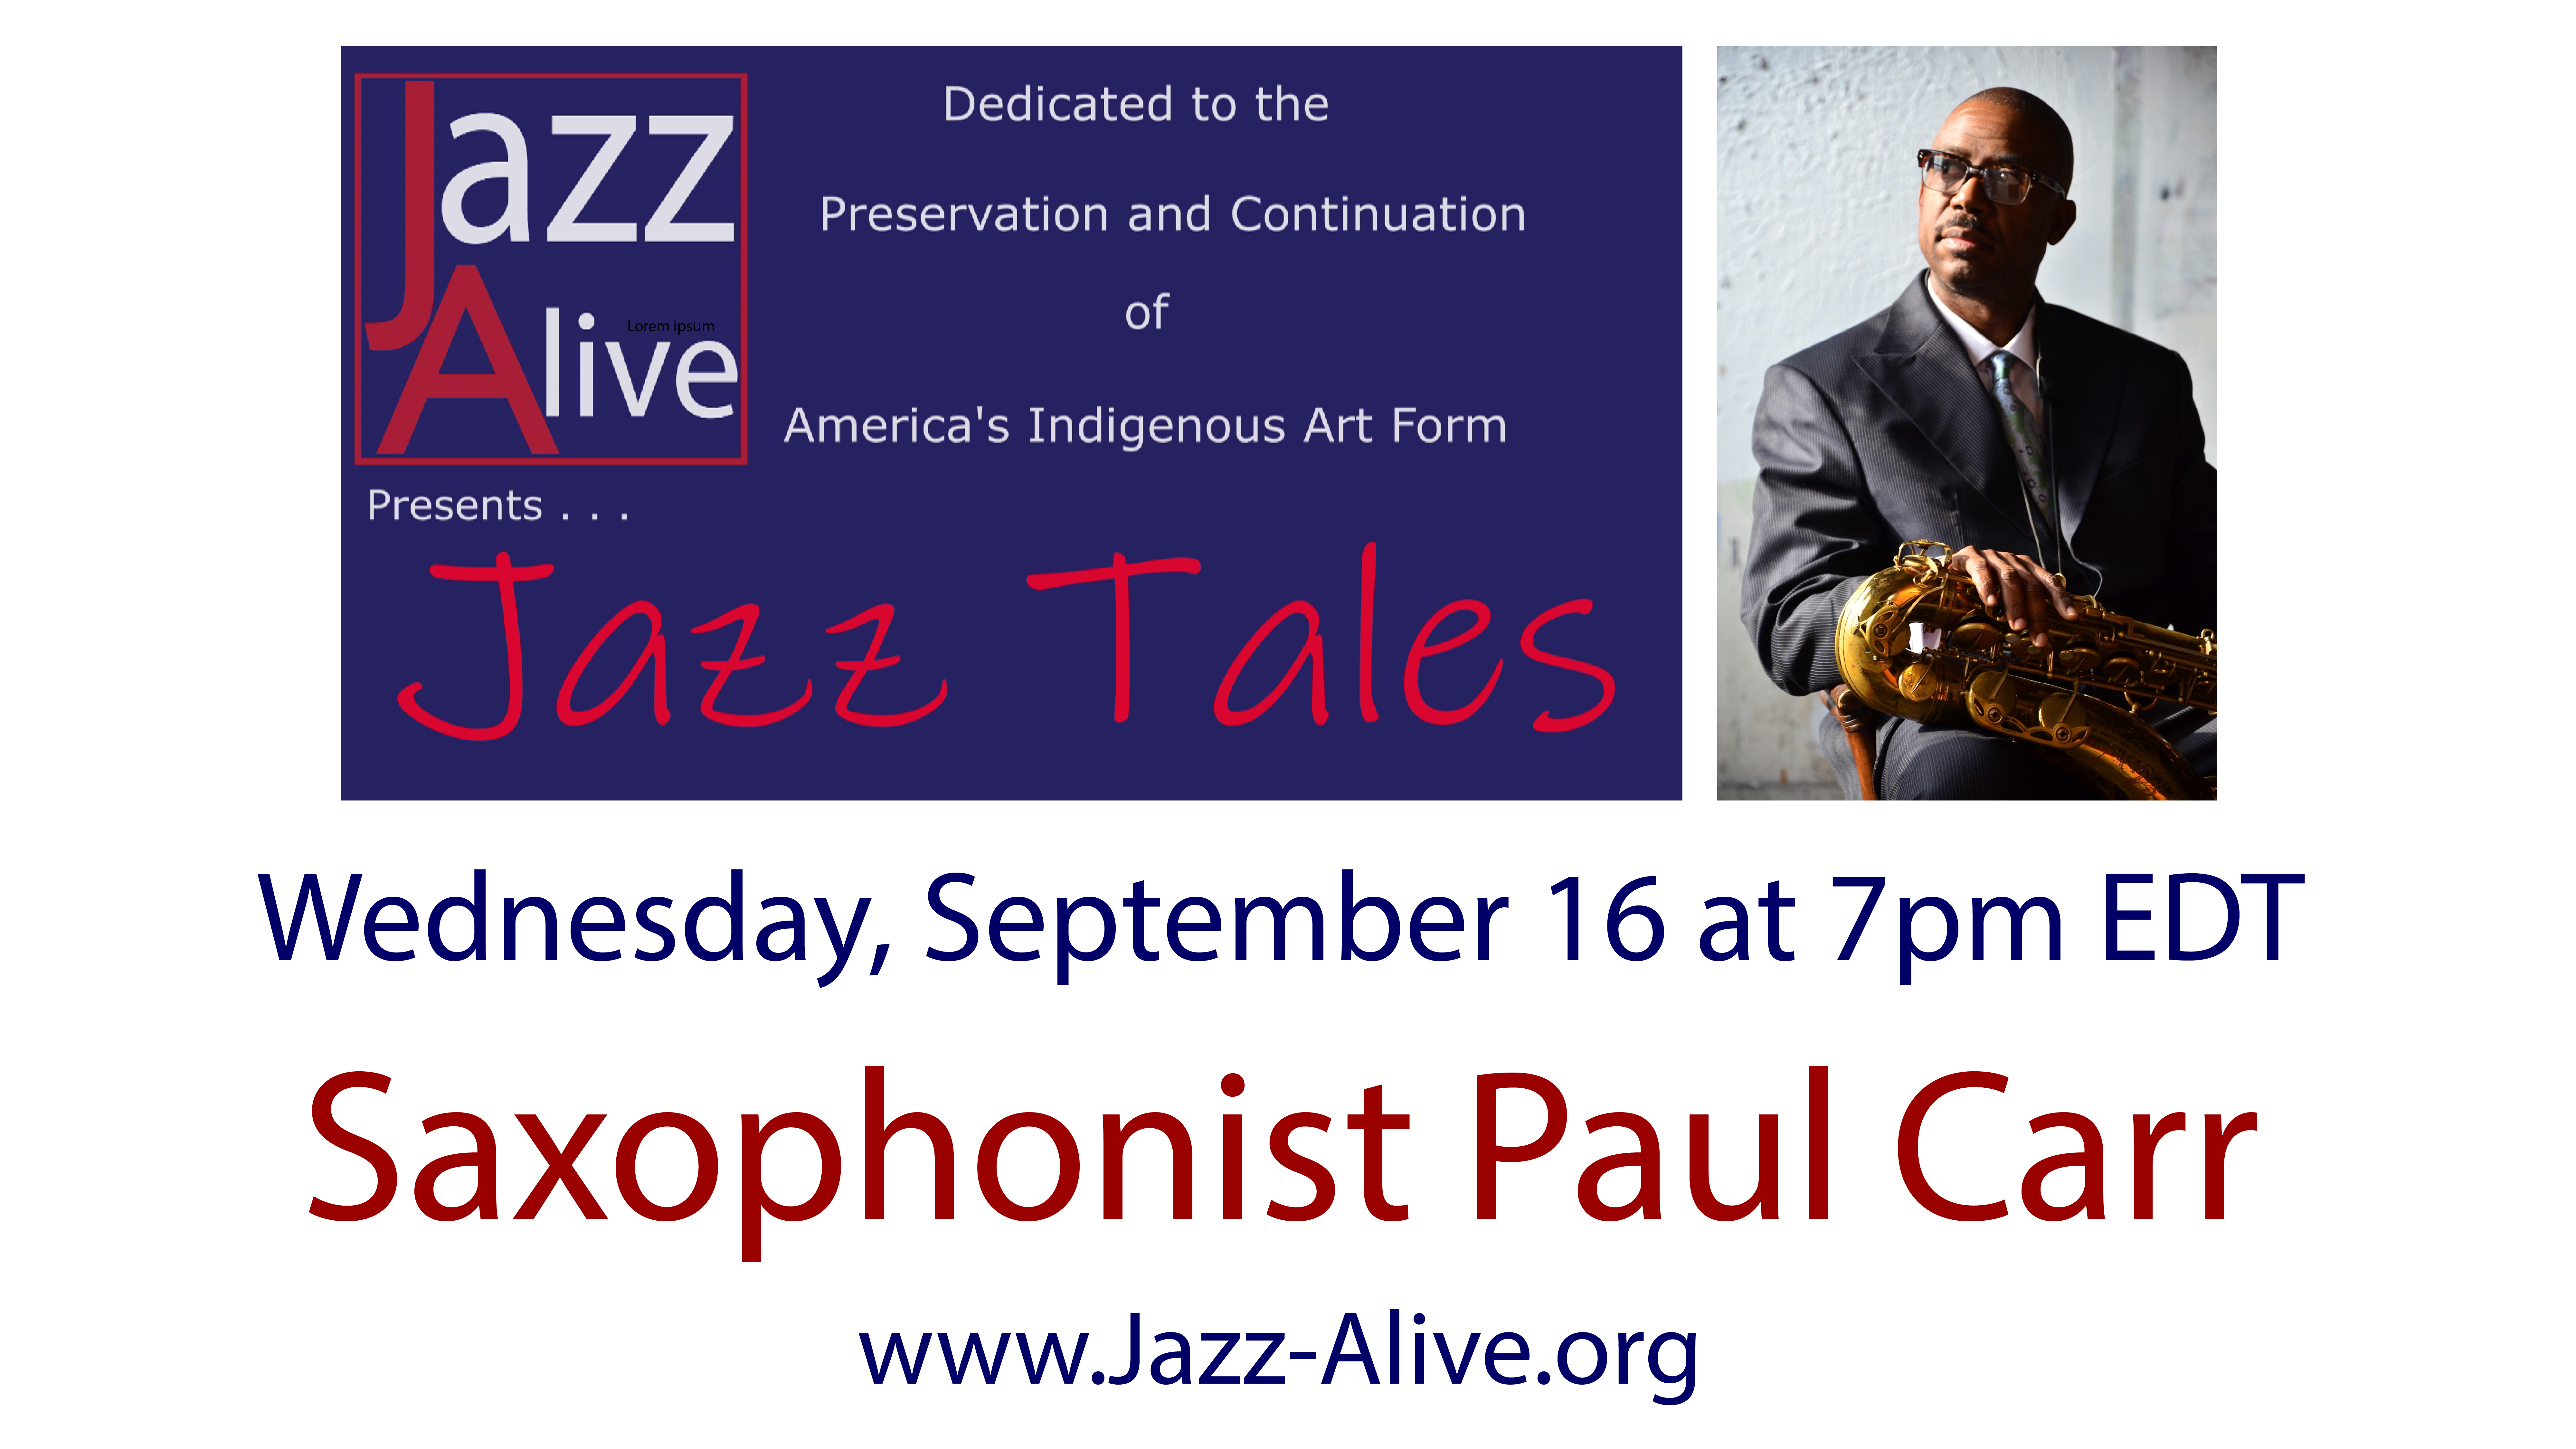 Jazz Tales With Saxophonist Paul Carr